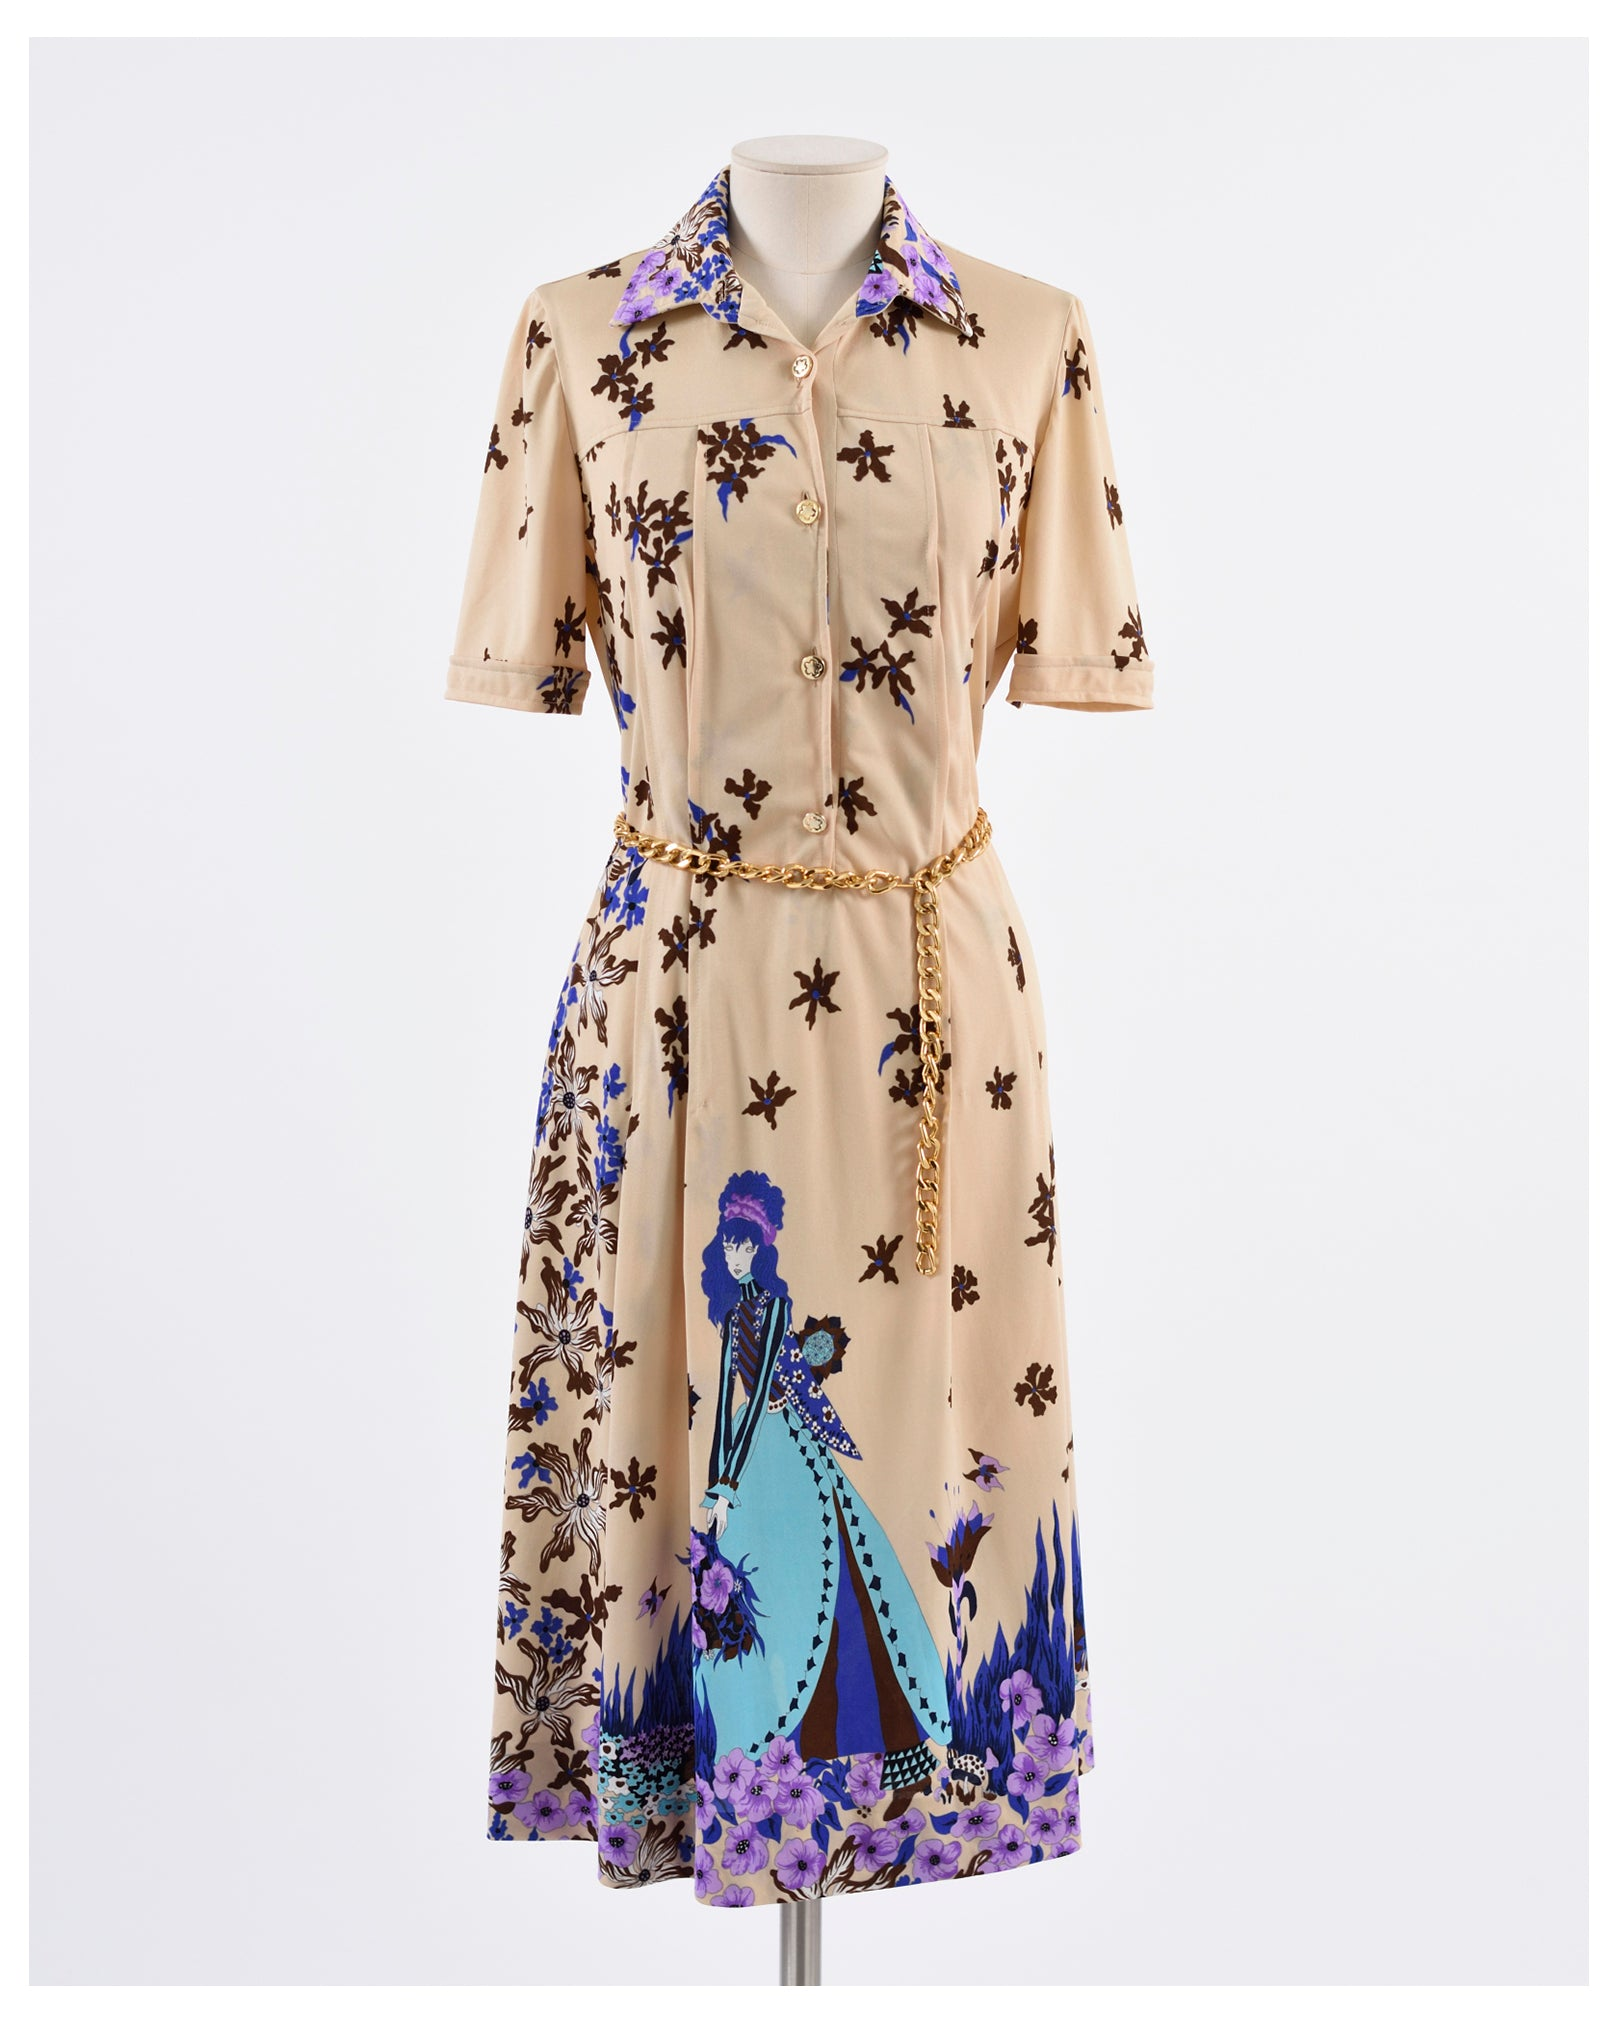 Novelty Print Vintage 1970s Jersey Dress - Cavalli e Nastri